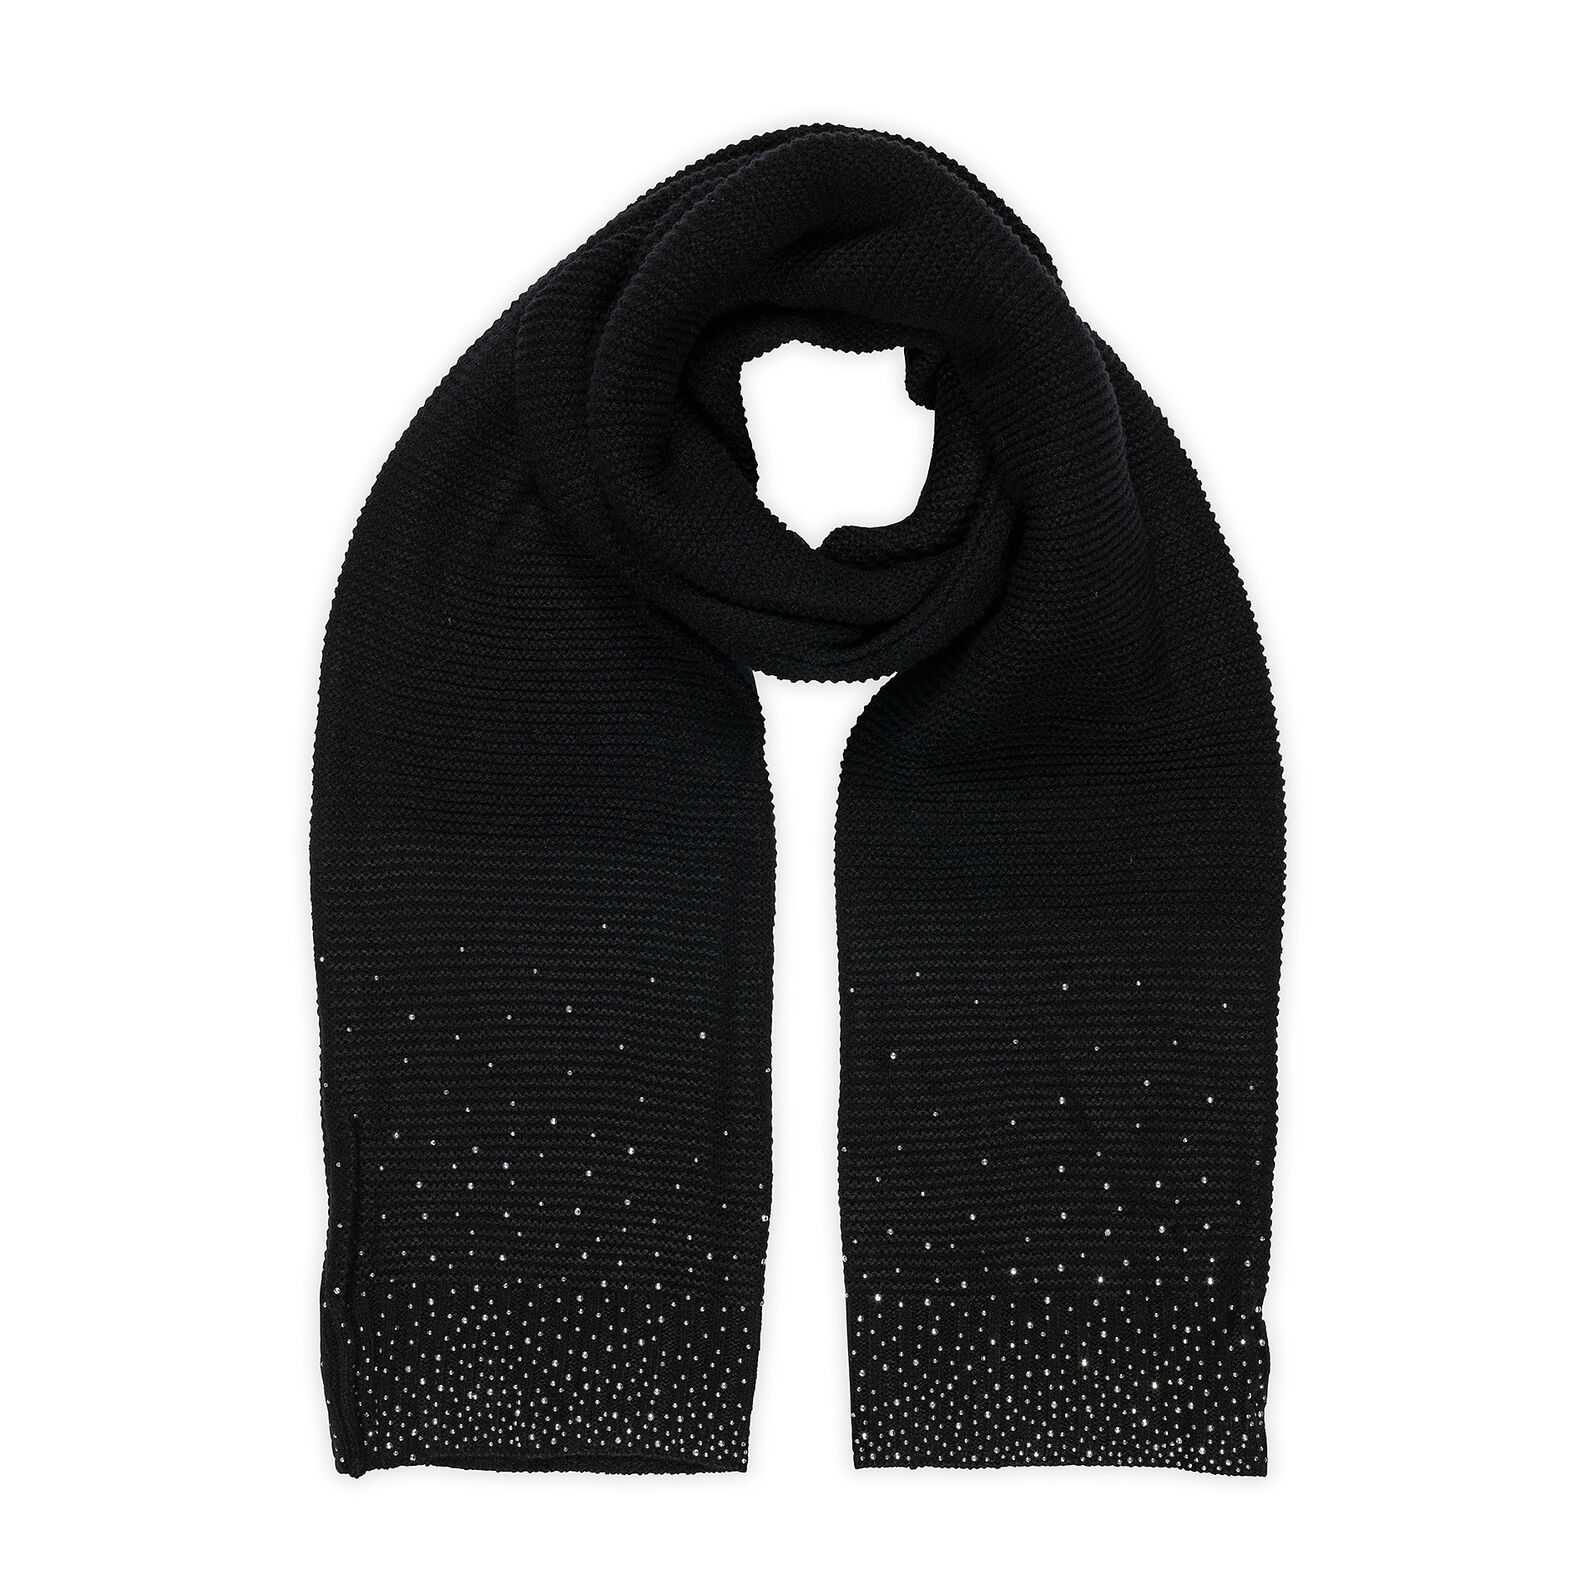 Koan knitted scarf with rhinestones